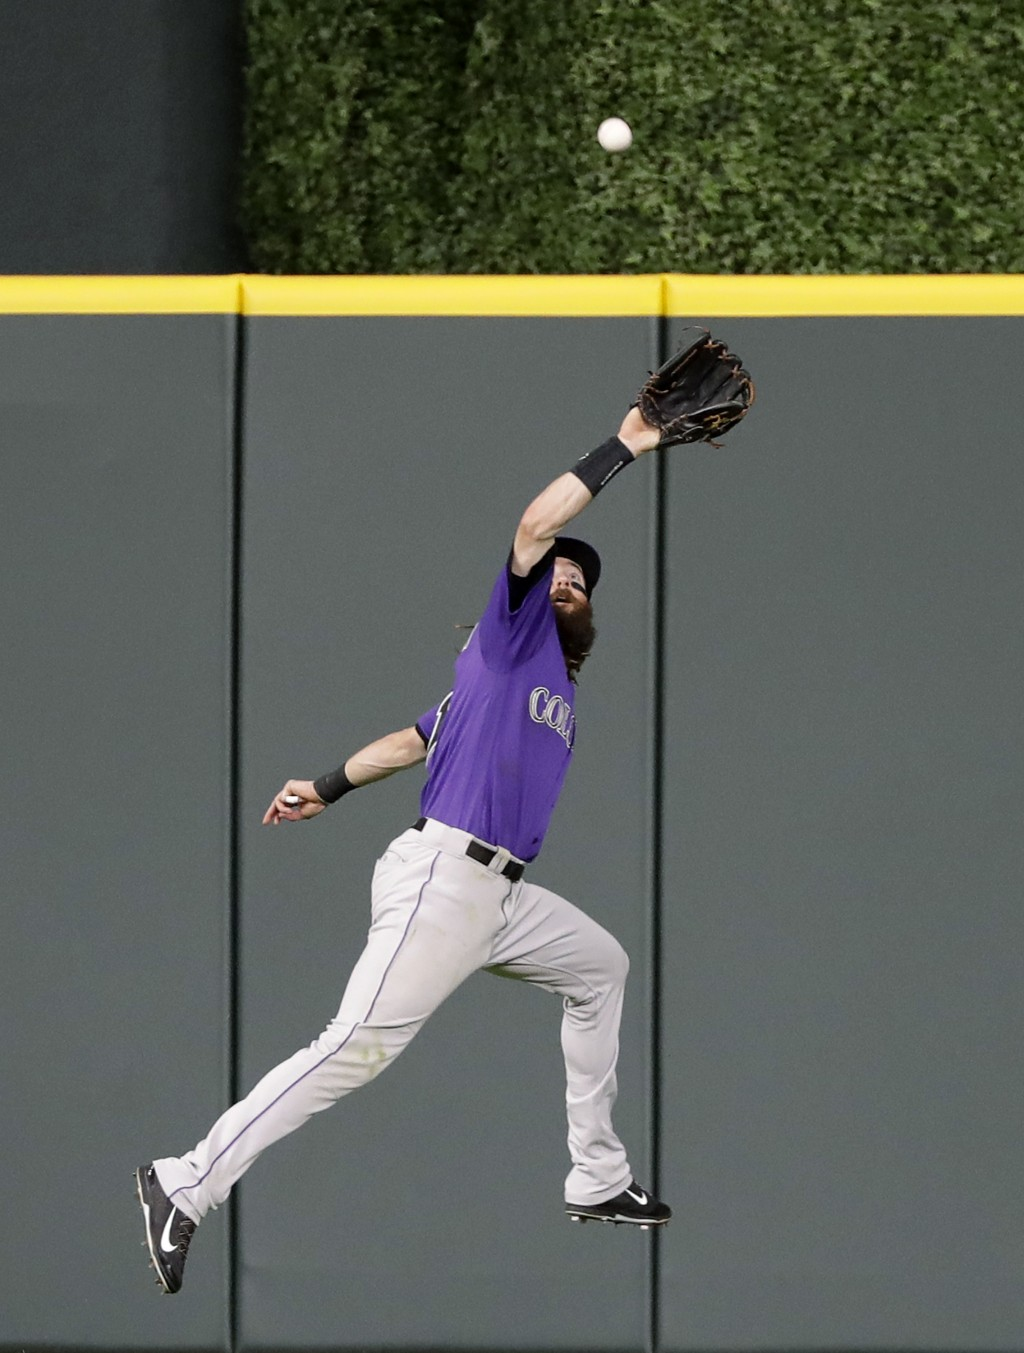 Colorado Rockies center fielder Charlie Blackmon leaps to make the catch on an RBI sacrifice fly by Houston Astros' Alex Bregman during the second inn...